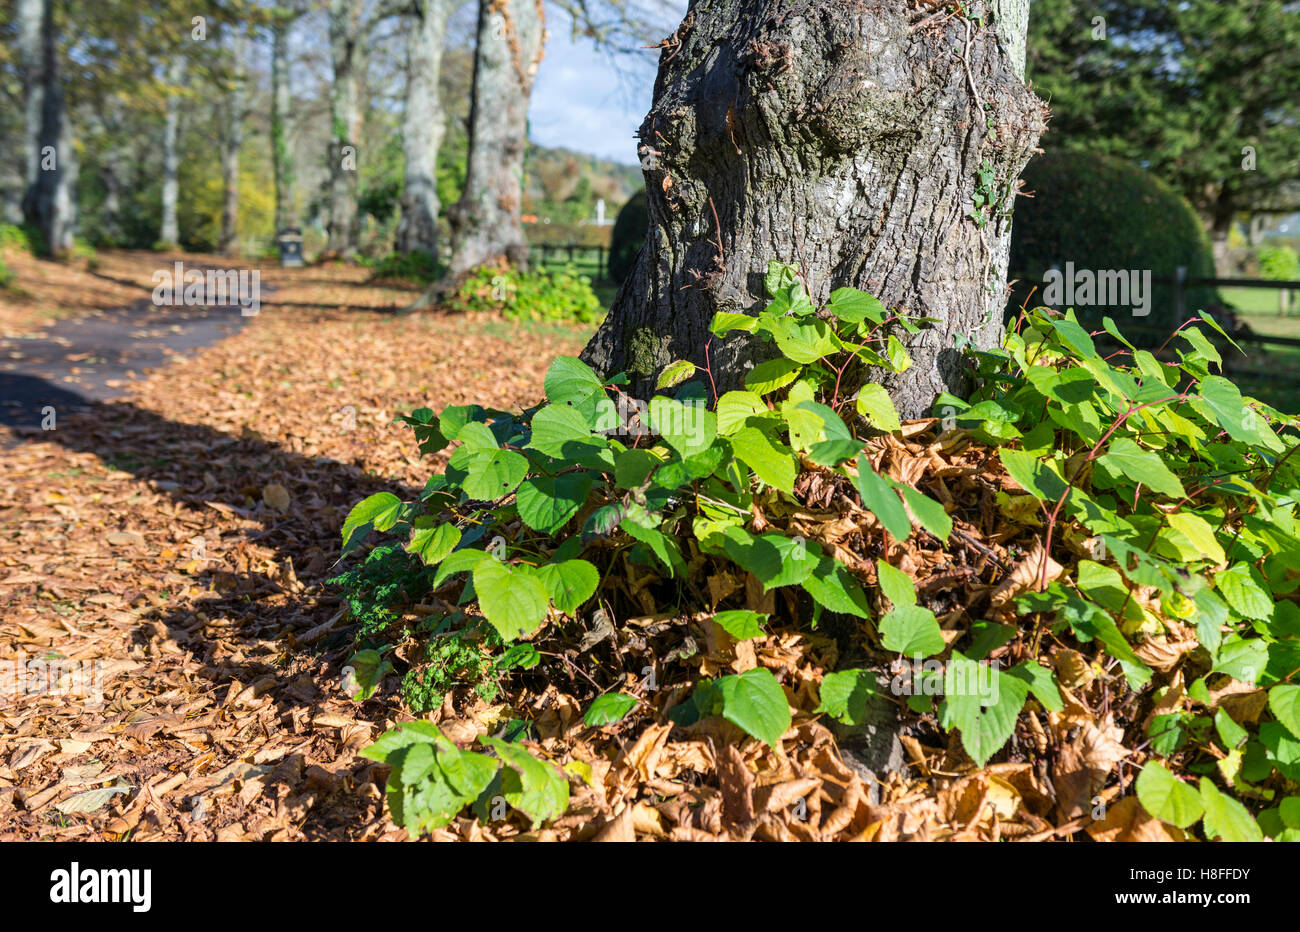 base-of-a-large-tree-in-autumn-with-leav